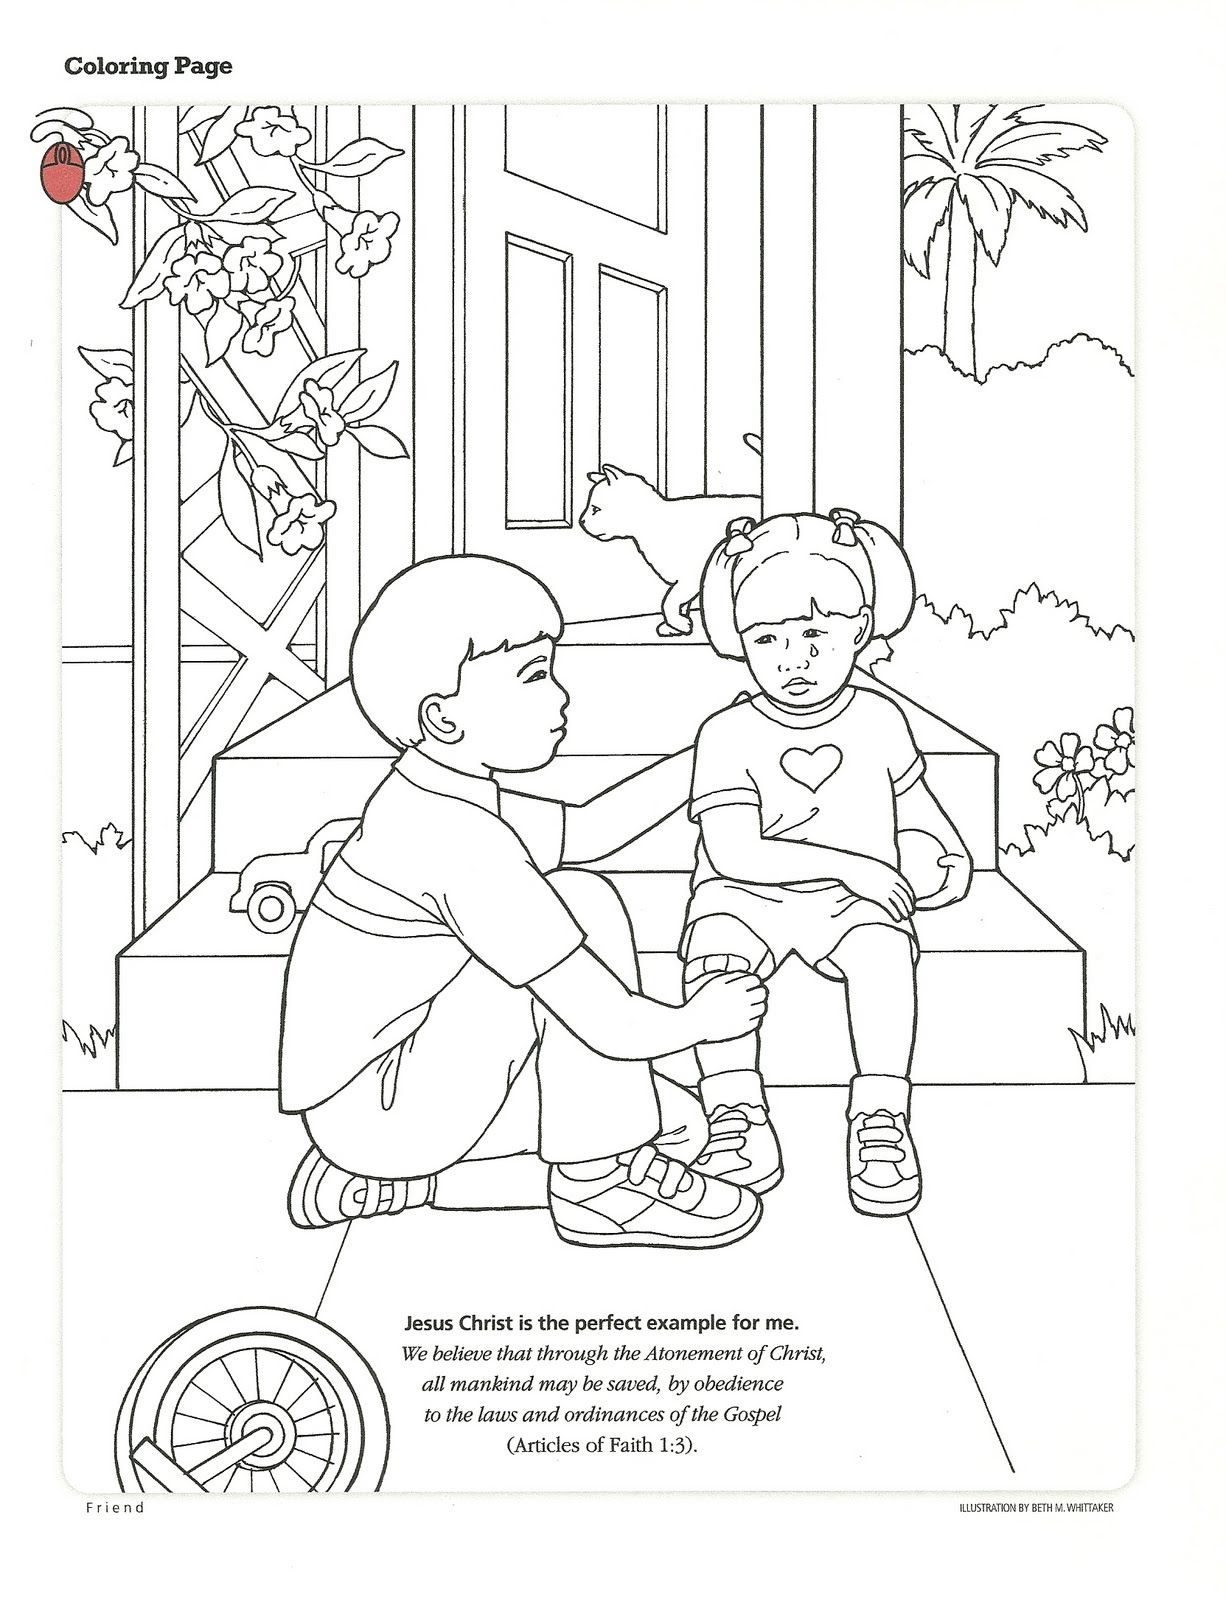 LDS Primary Coloring Pages | Activity from The Friend, September ...